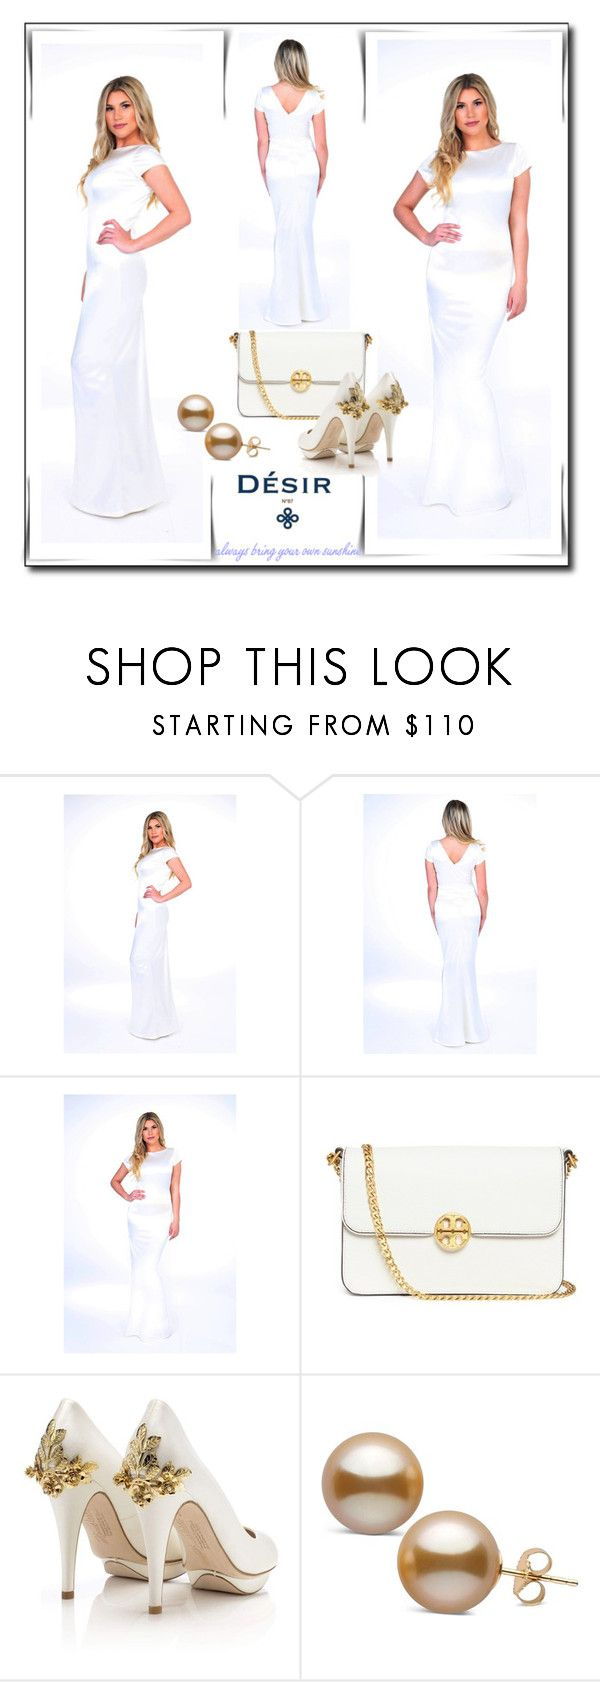 """""""Desir Vale 7"""" by sabinn ❤ liked on Polyvore featuring Tory Burch and HARRIET WILDE"""